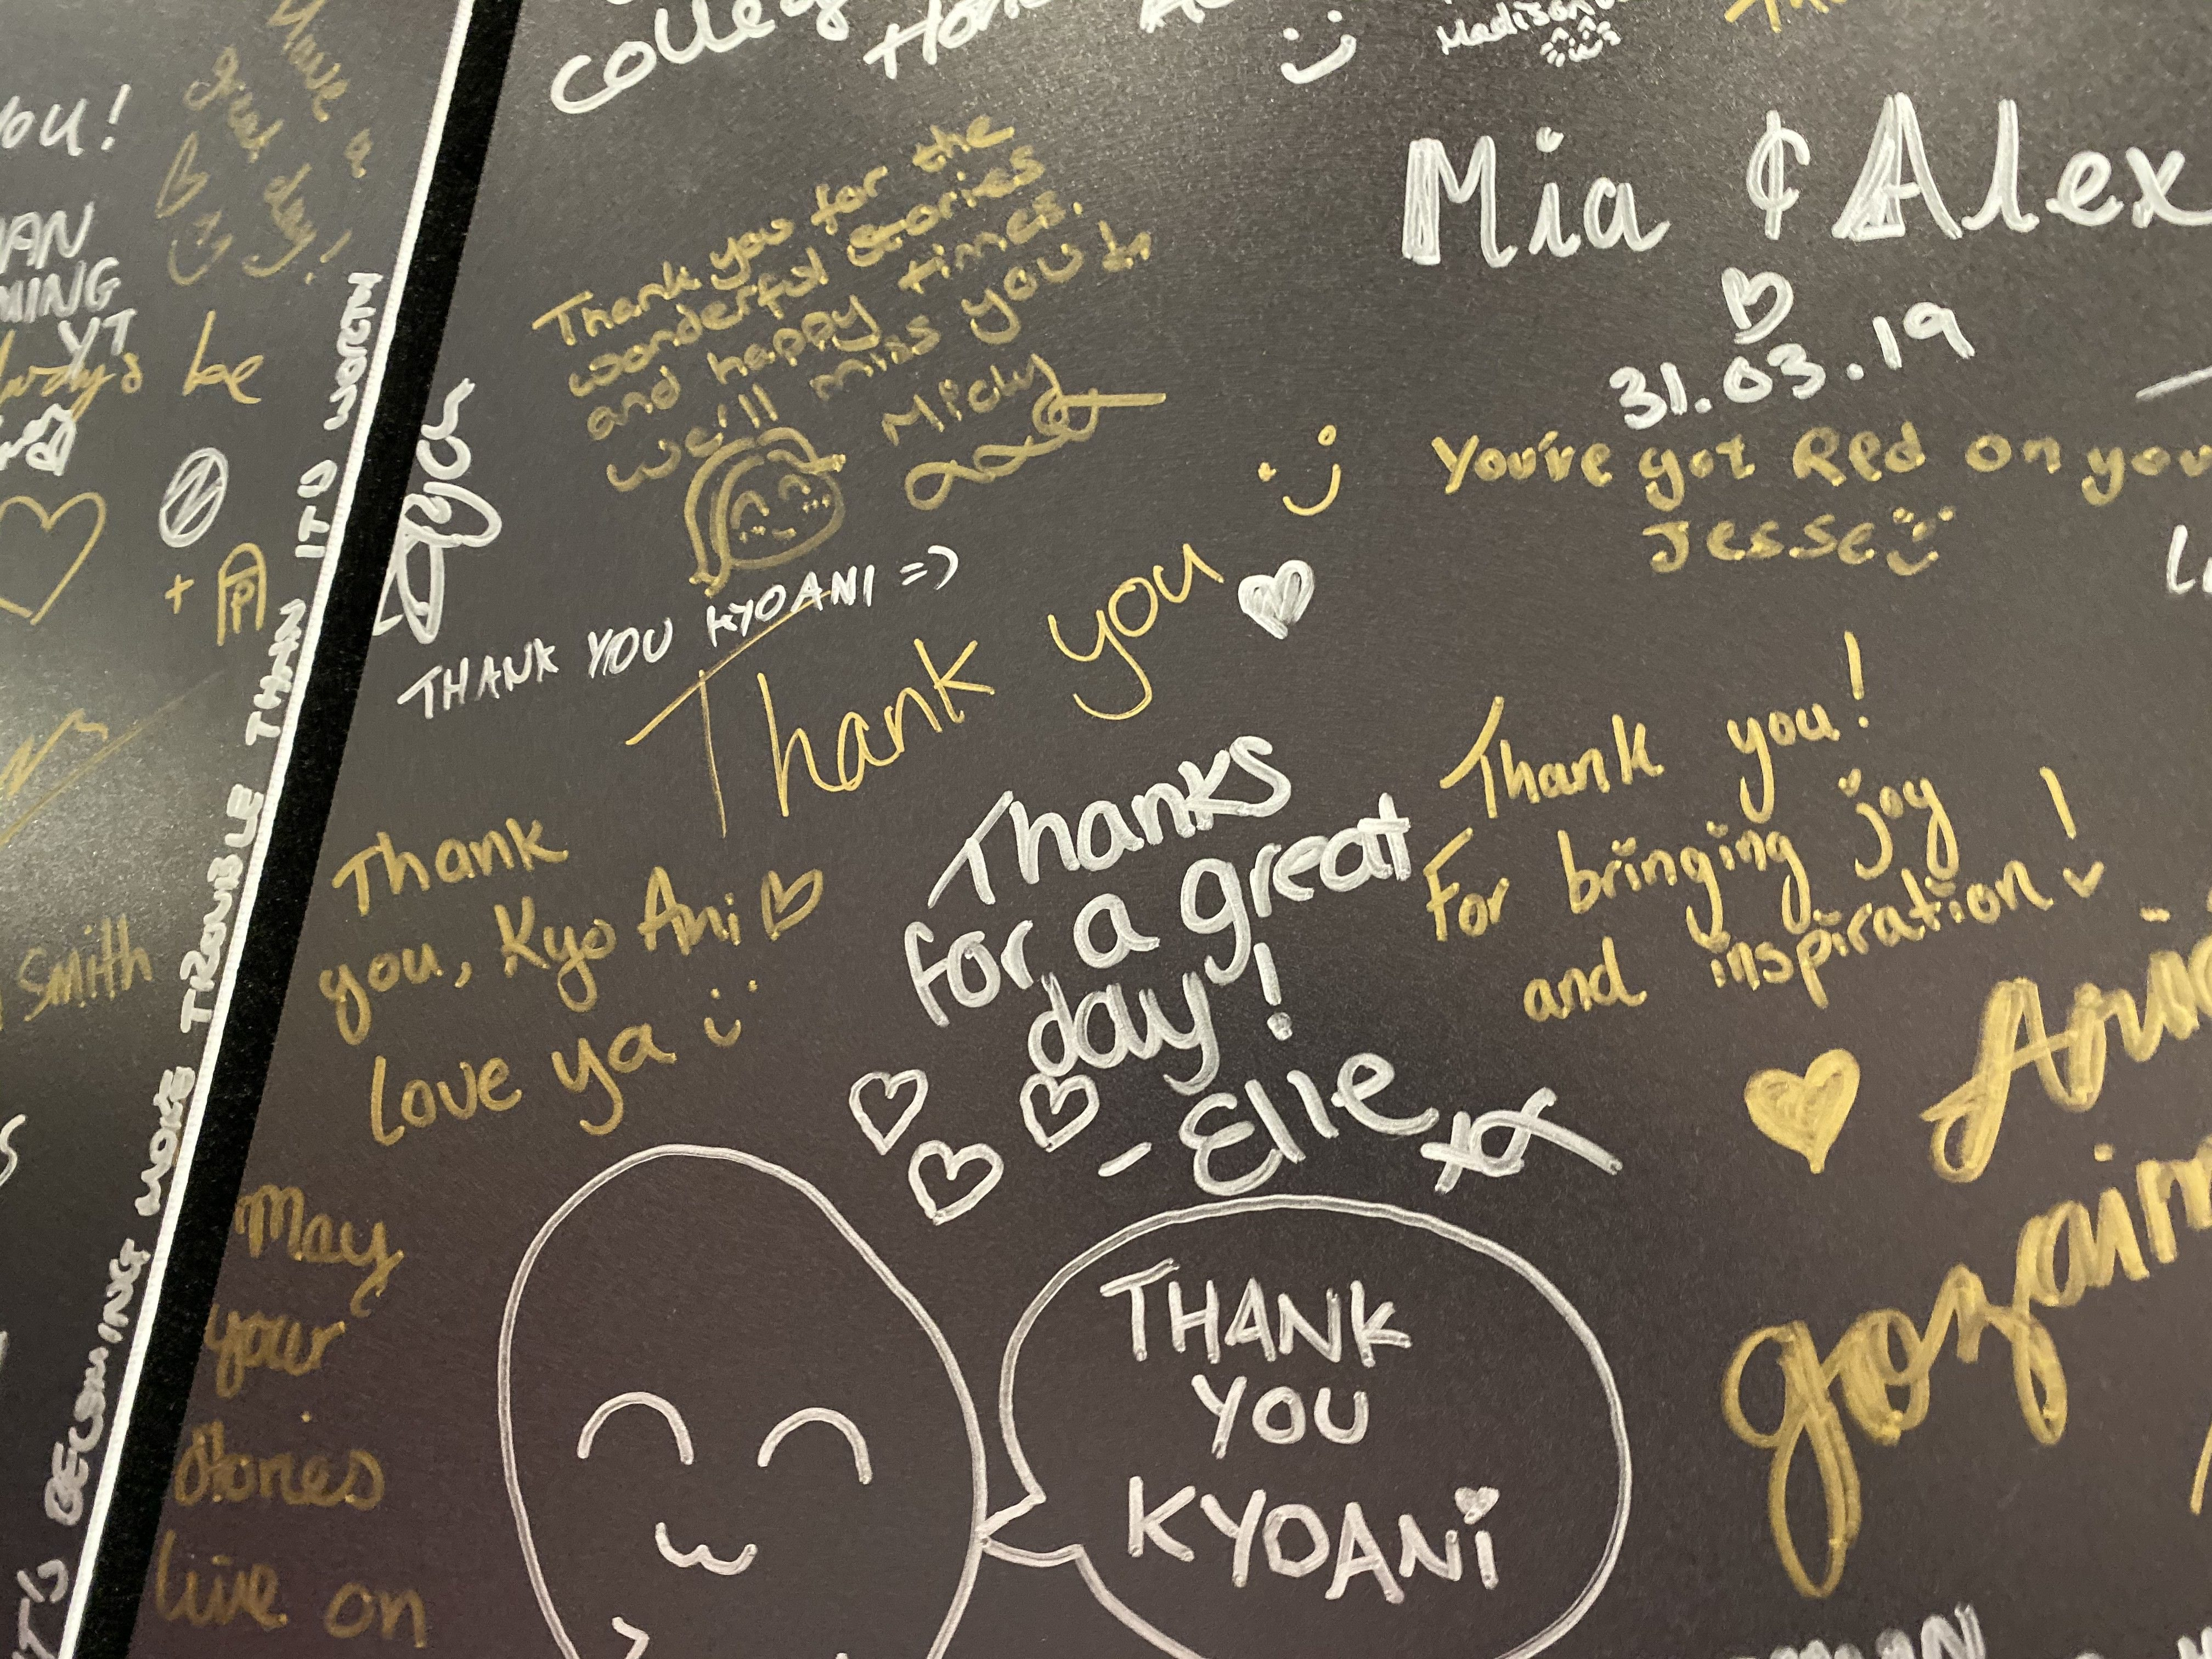 Jase\'s thank you message for KyoAni (equals smiley)